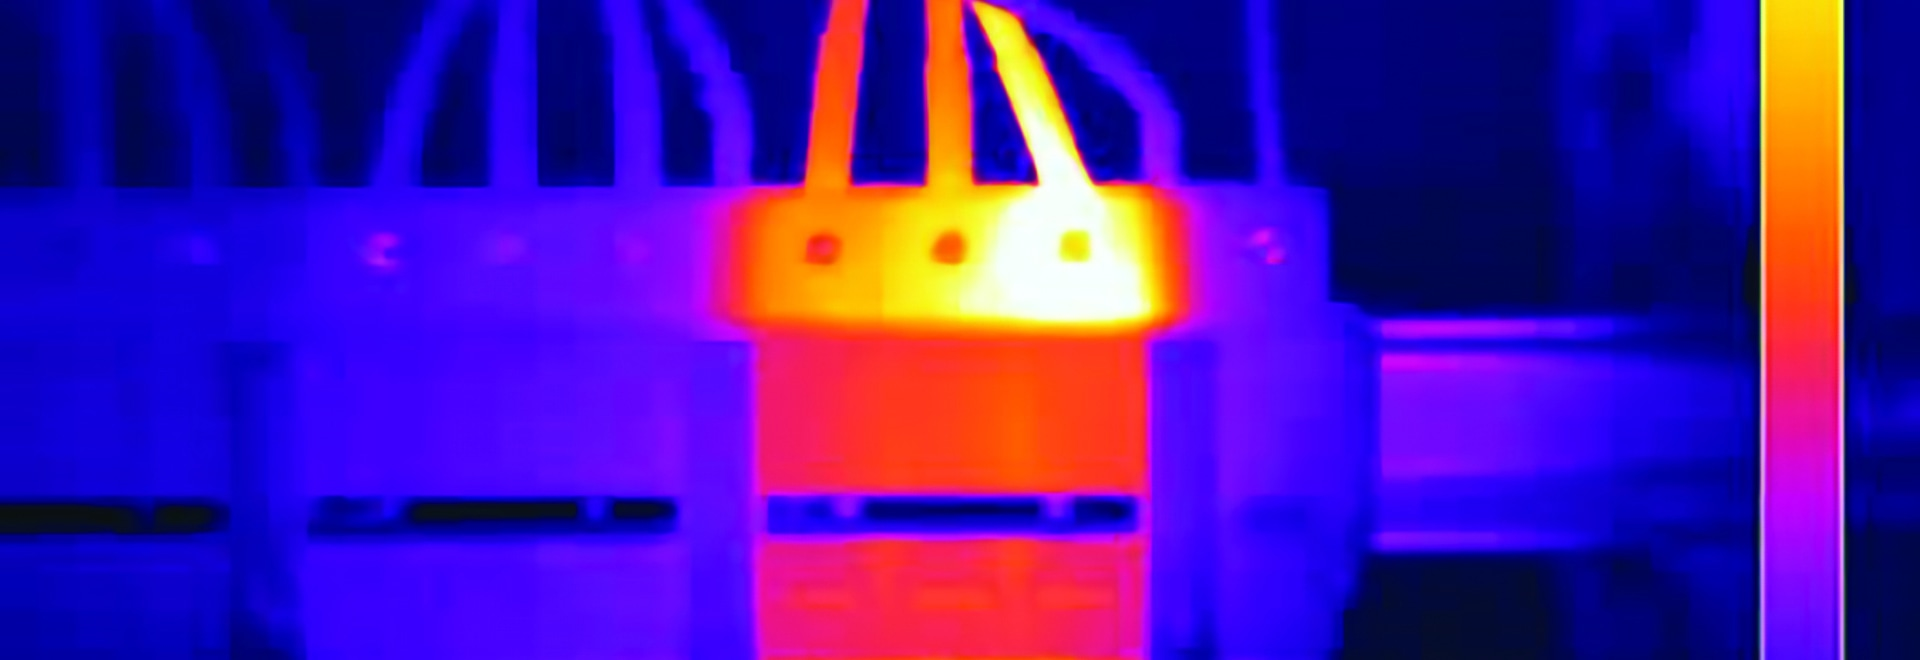 FLIR thermal image: cable connections